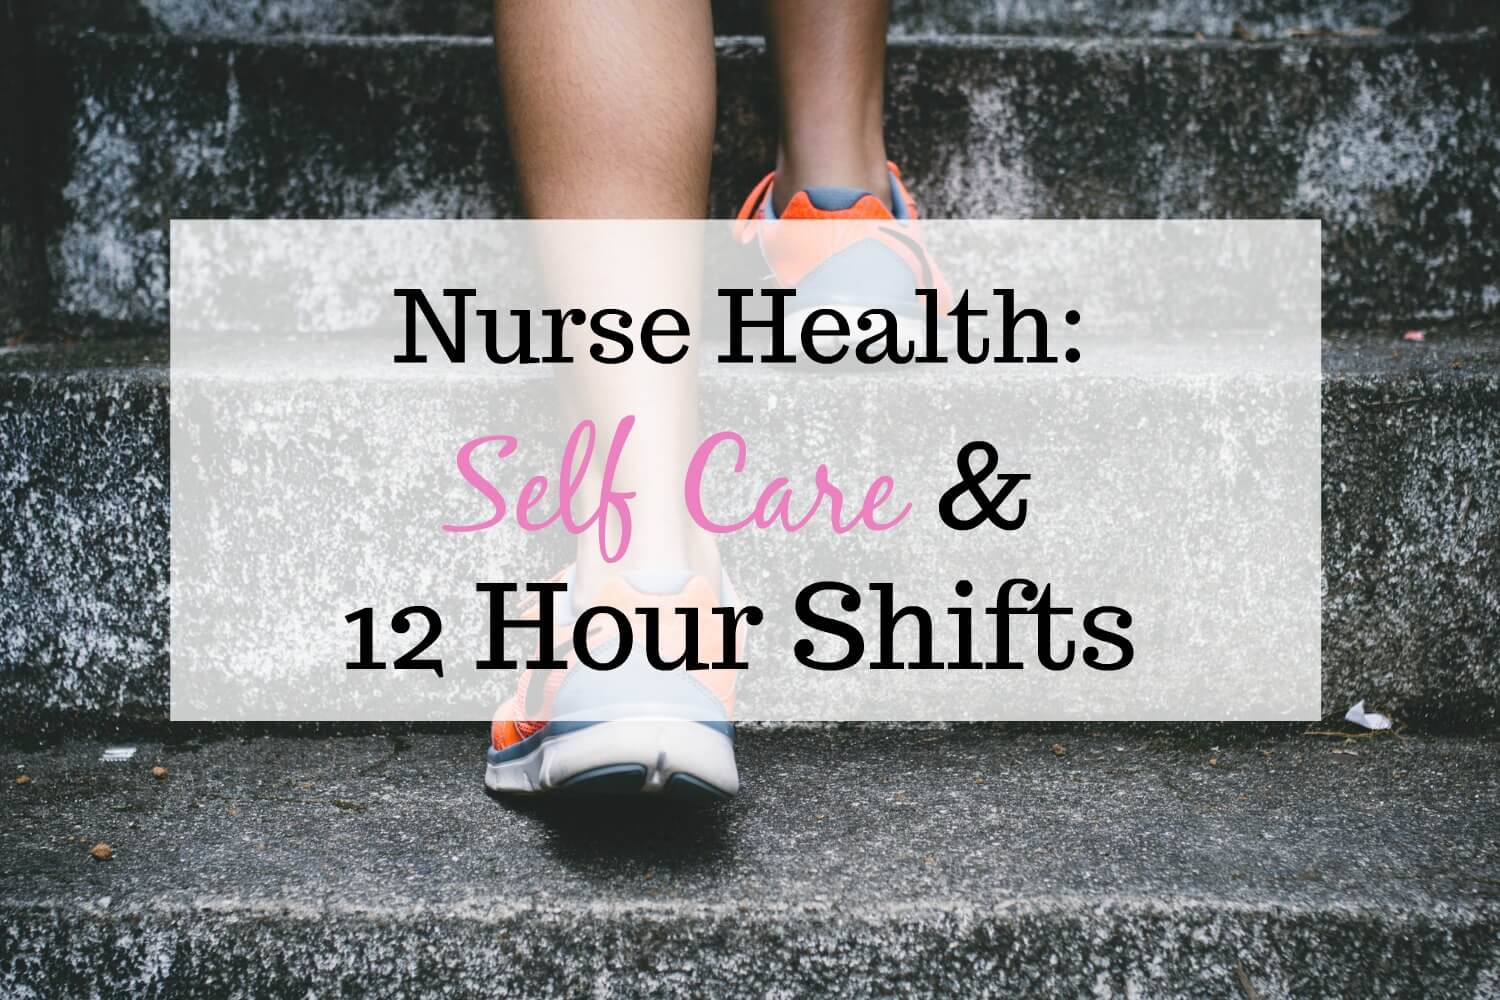 Nurse Health: Self Care For 12 Hour Shifts